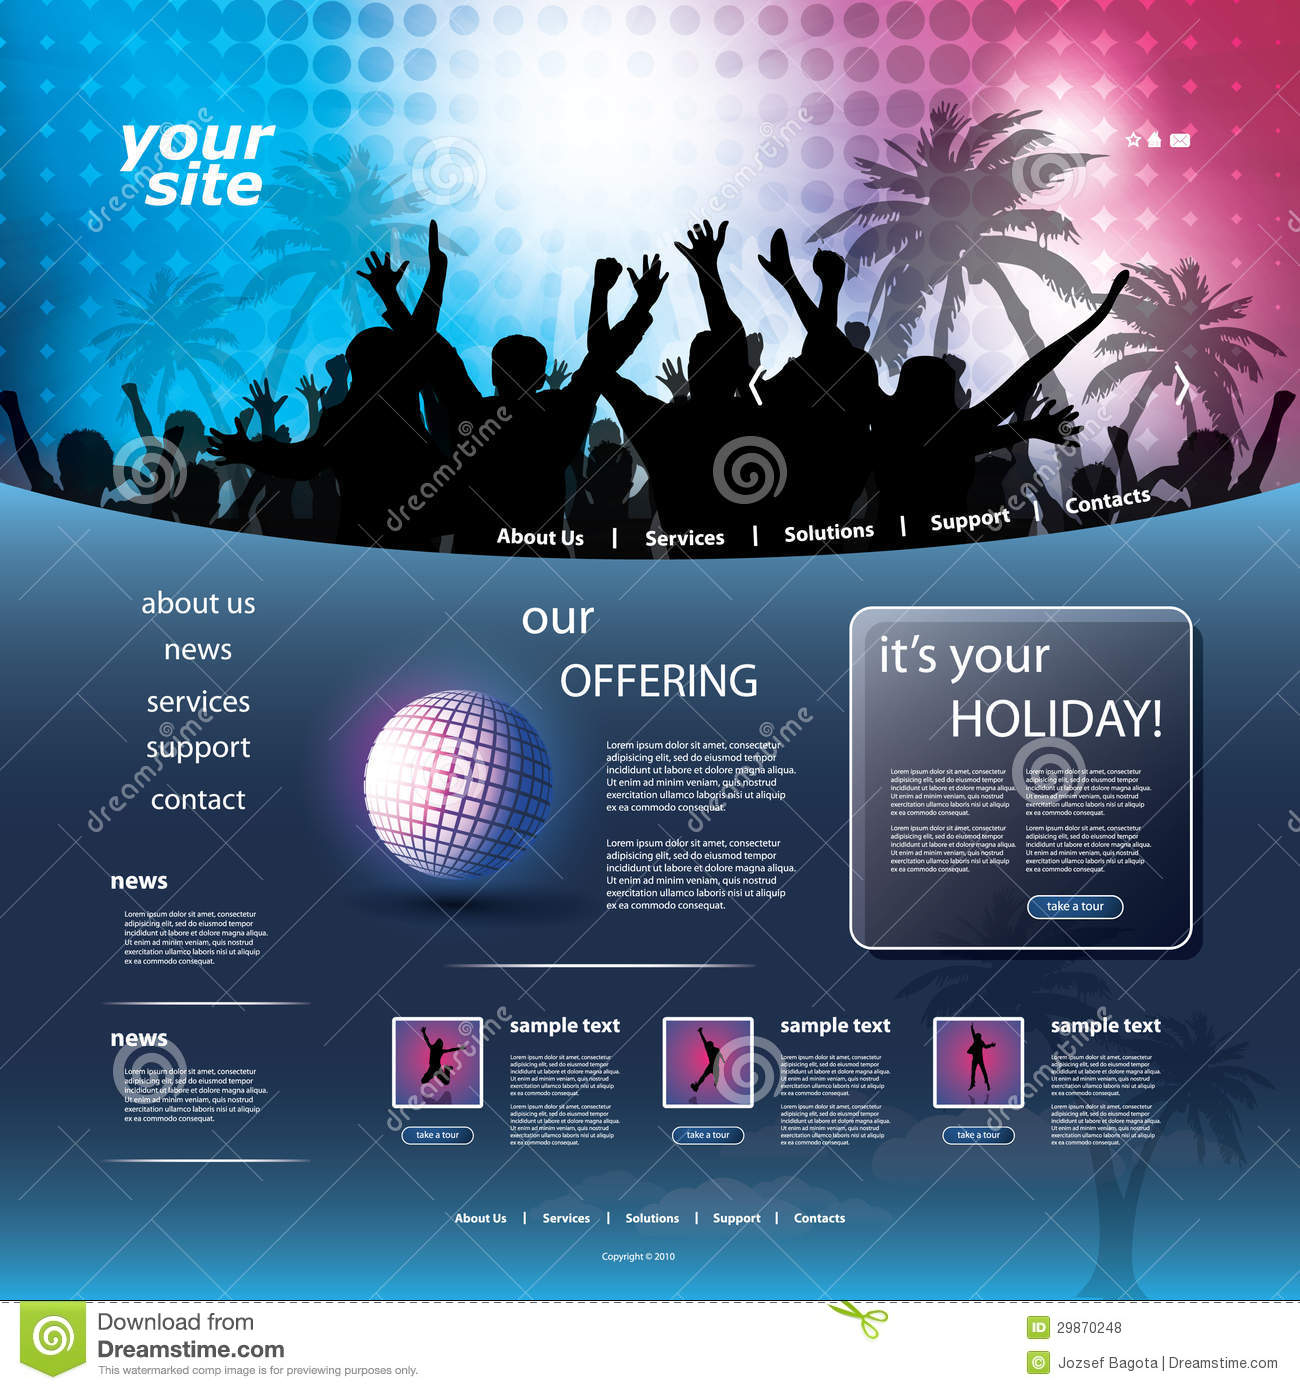 Party Website Template Royalty Free Stock Photos - Image: 29870248